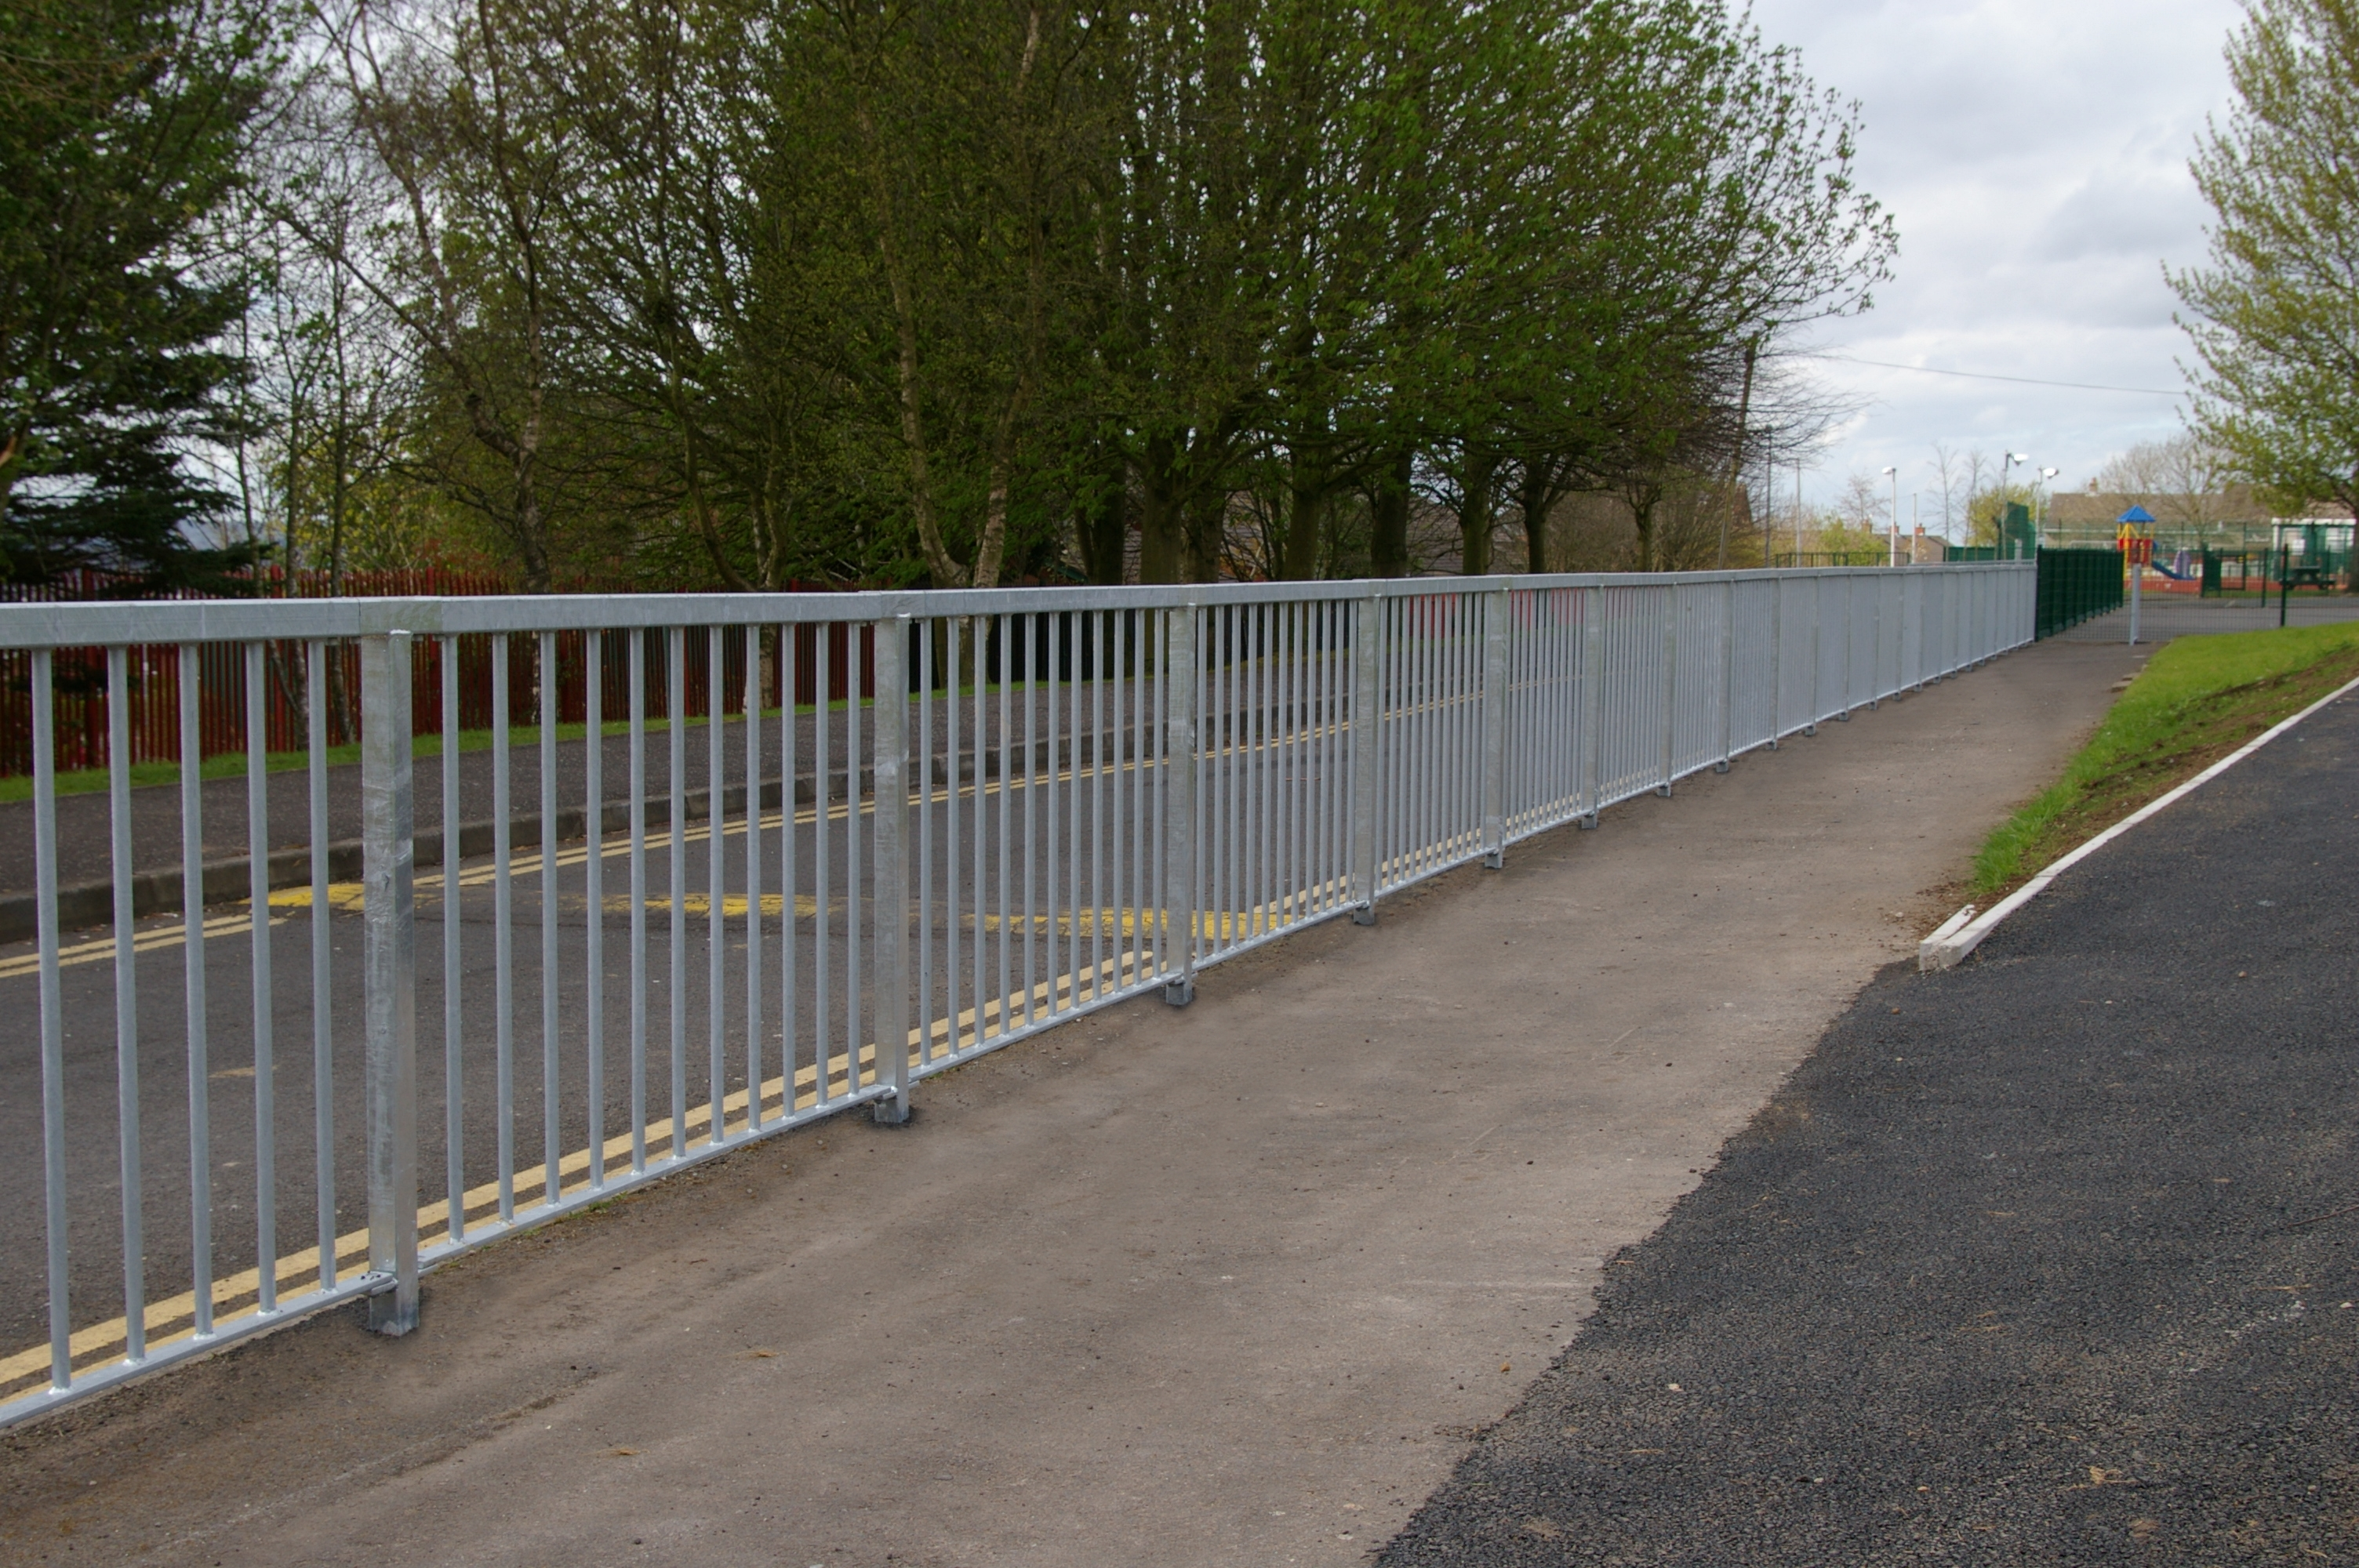 Nk on road pedestrian guard rail fencing uk